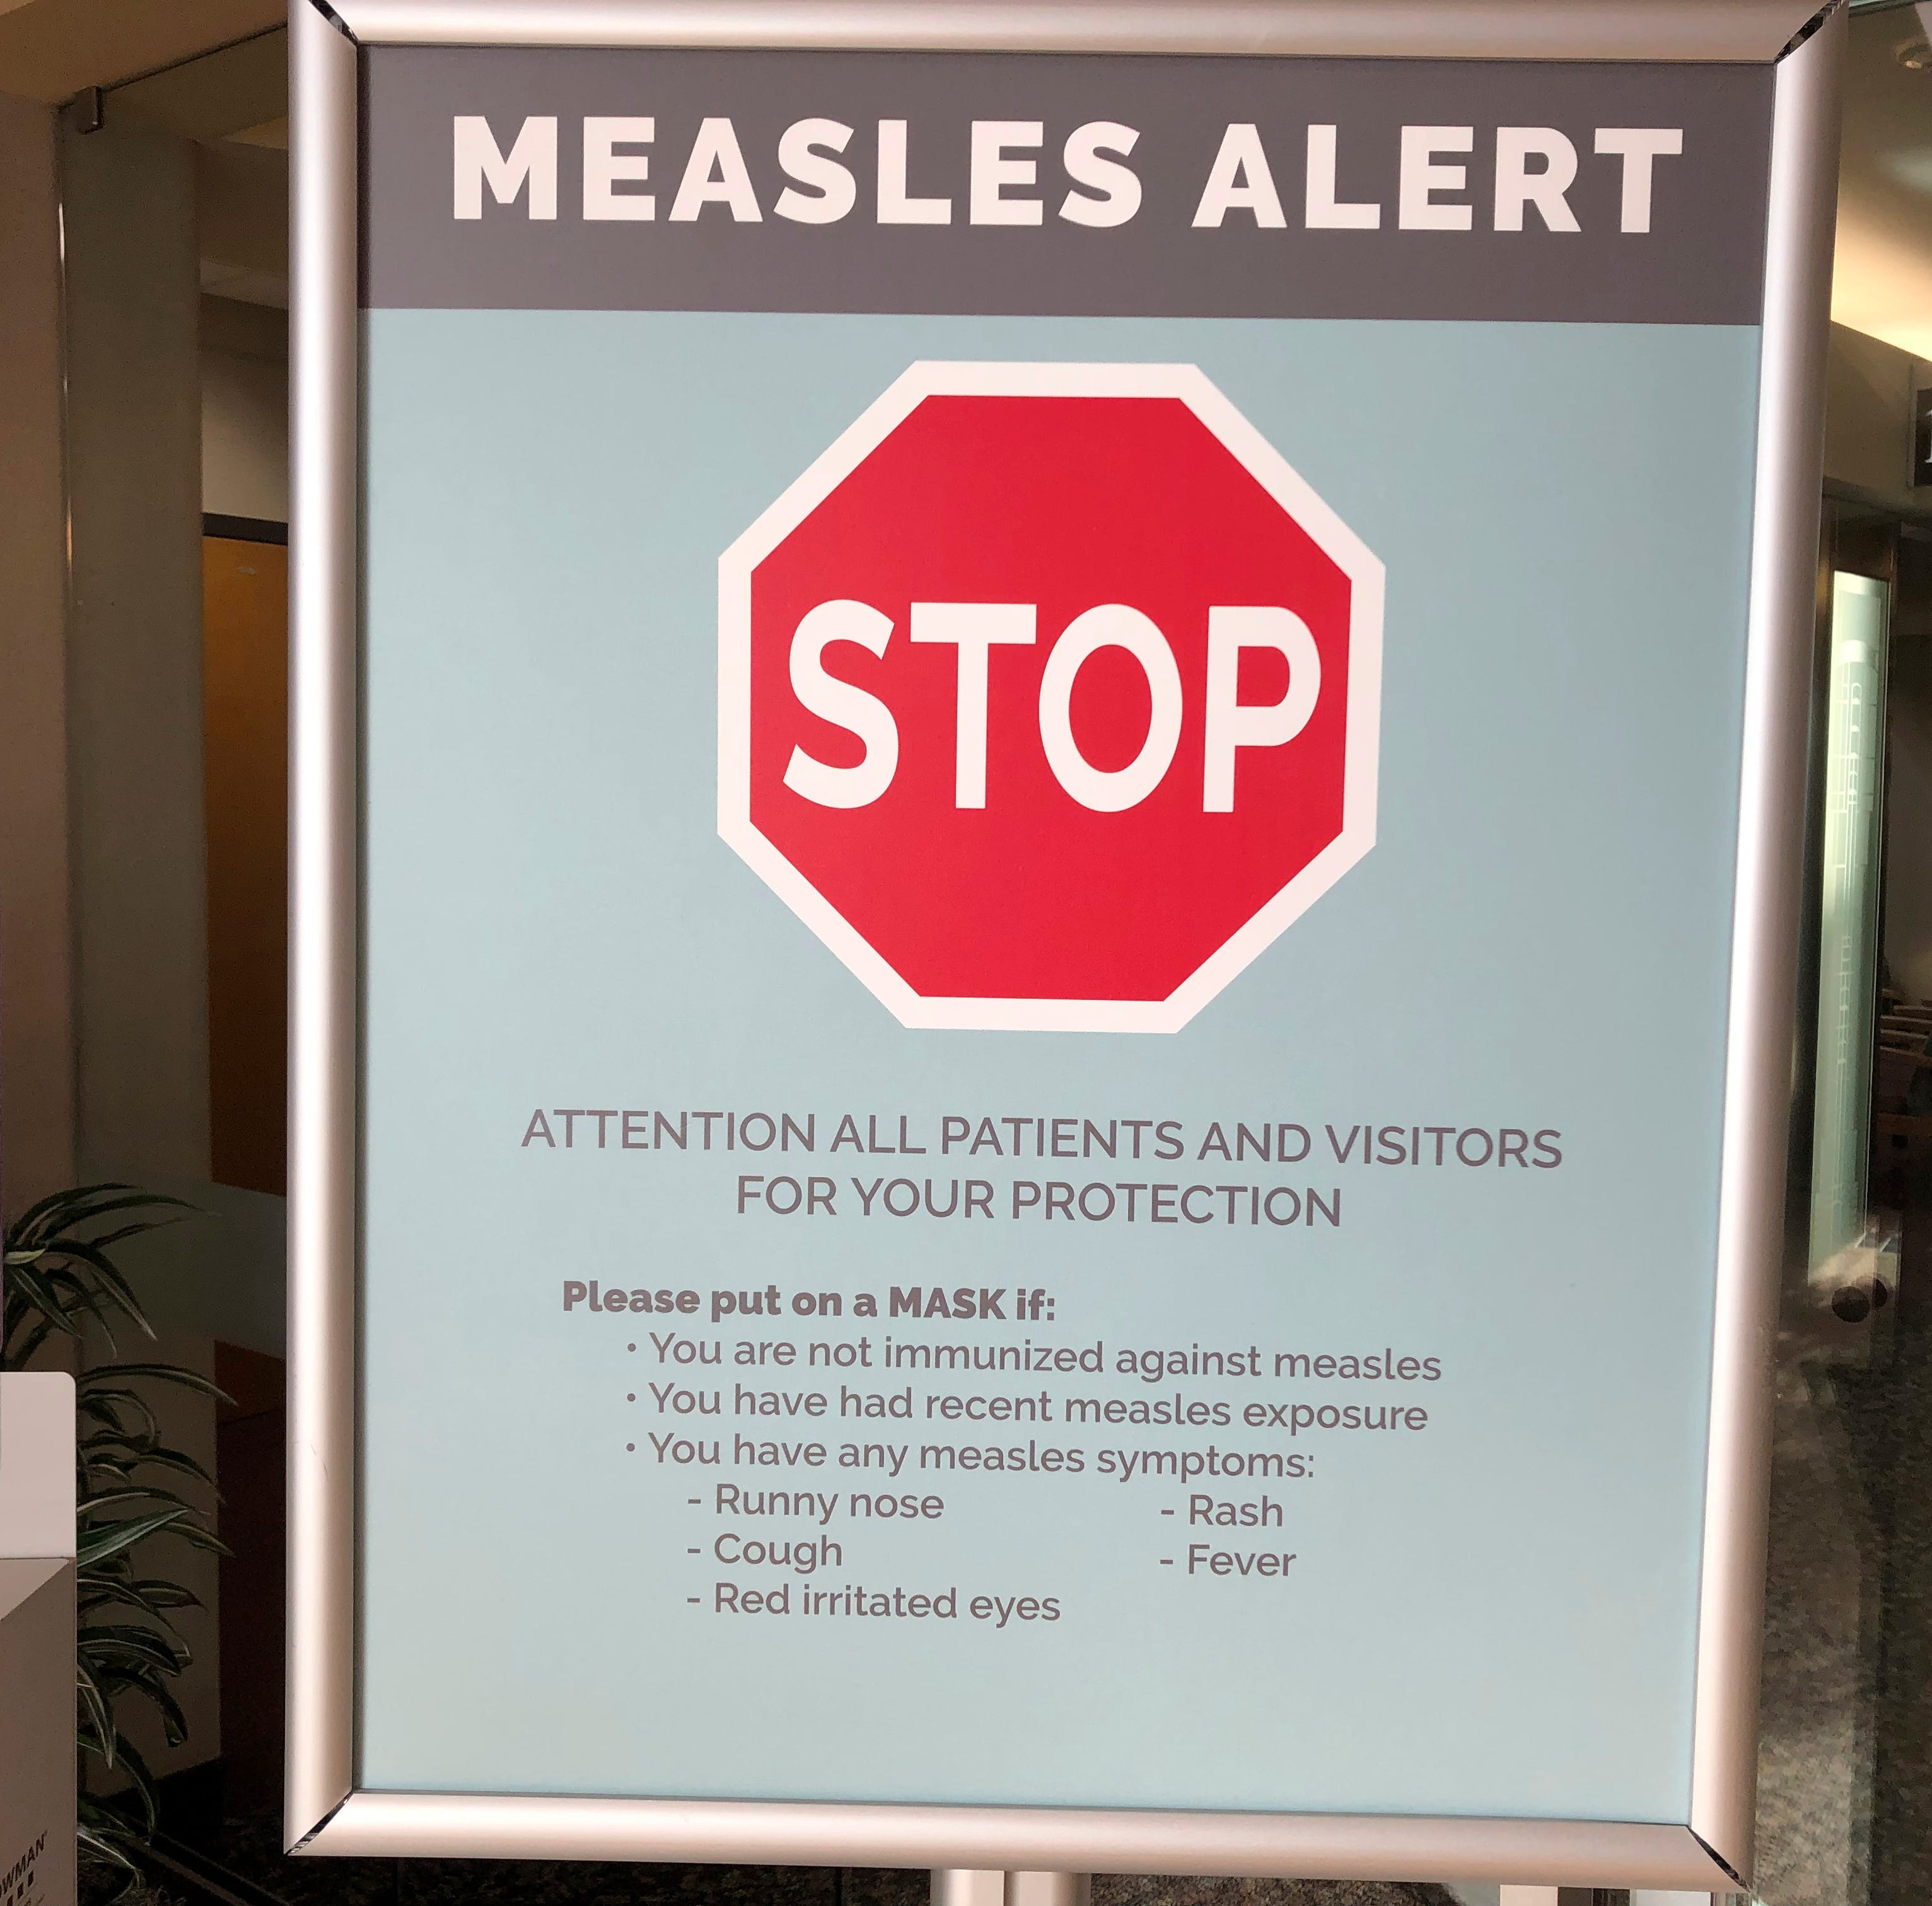 Andreatta: Autism fraud spreads measles